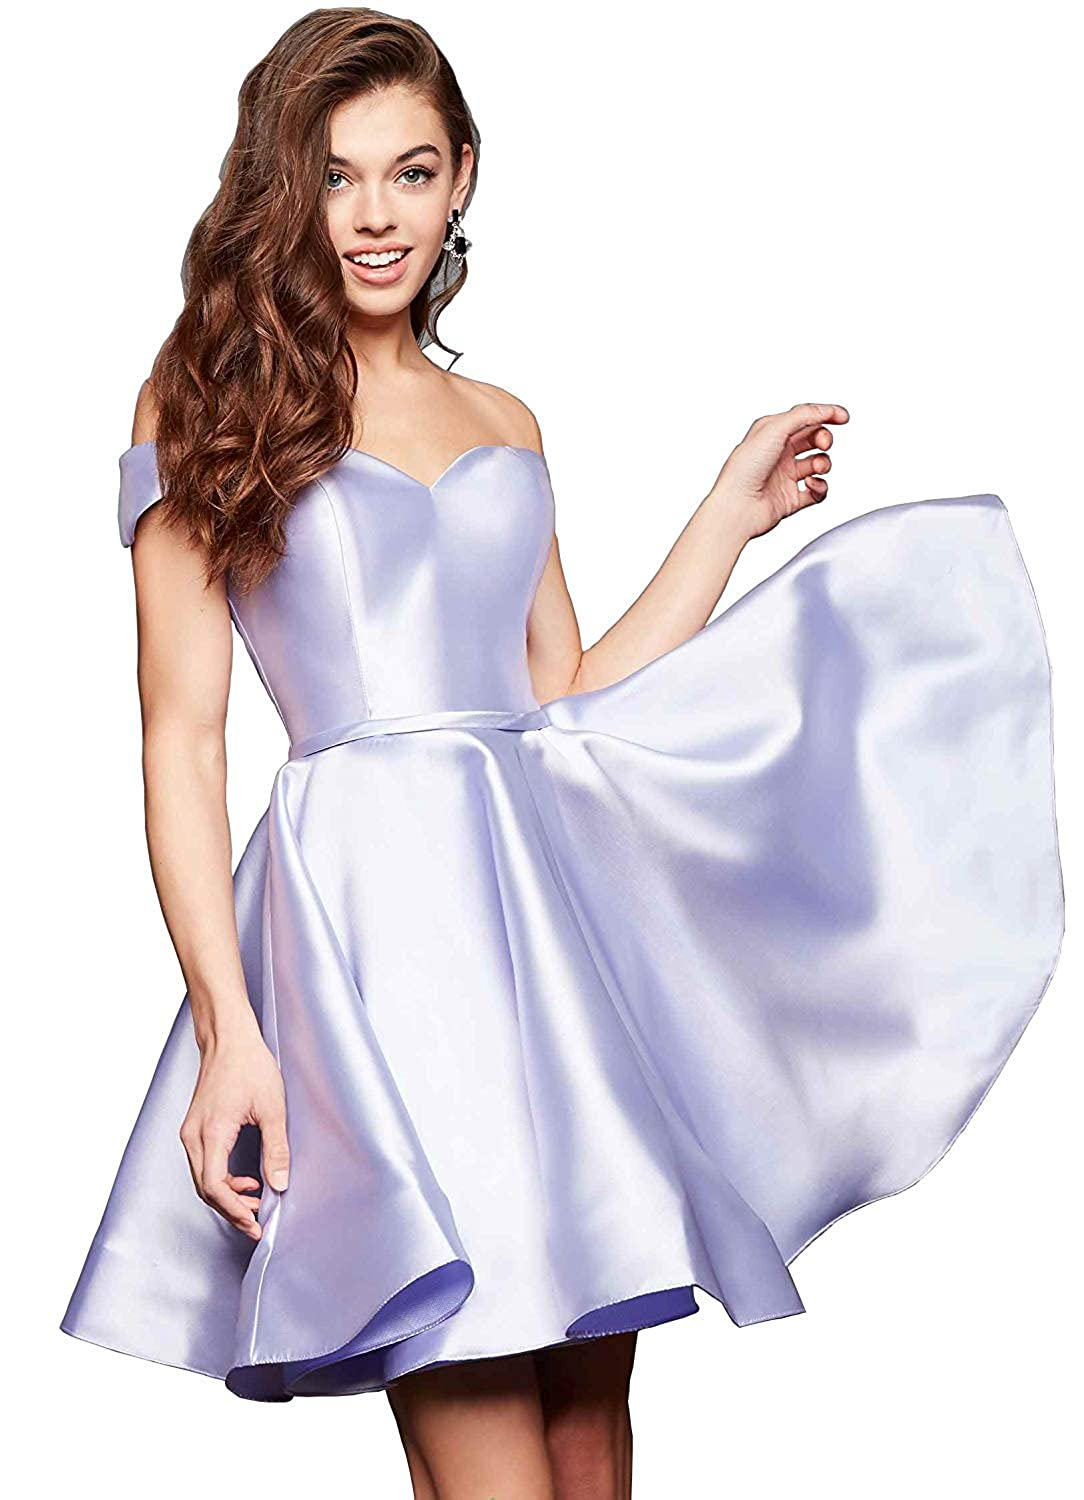 2b651ebc22 Gricharim Off Shoulder Homecoming Dresses 2019 Short Satin A-Line Prom  Party Gowns at Amazon Women s Clothing store